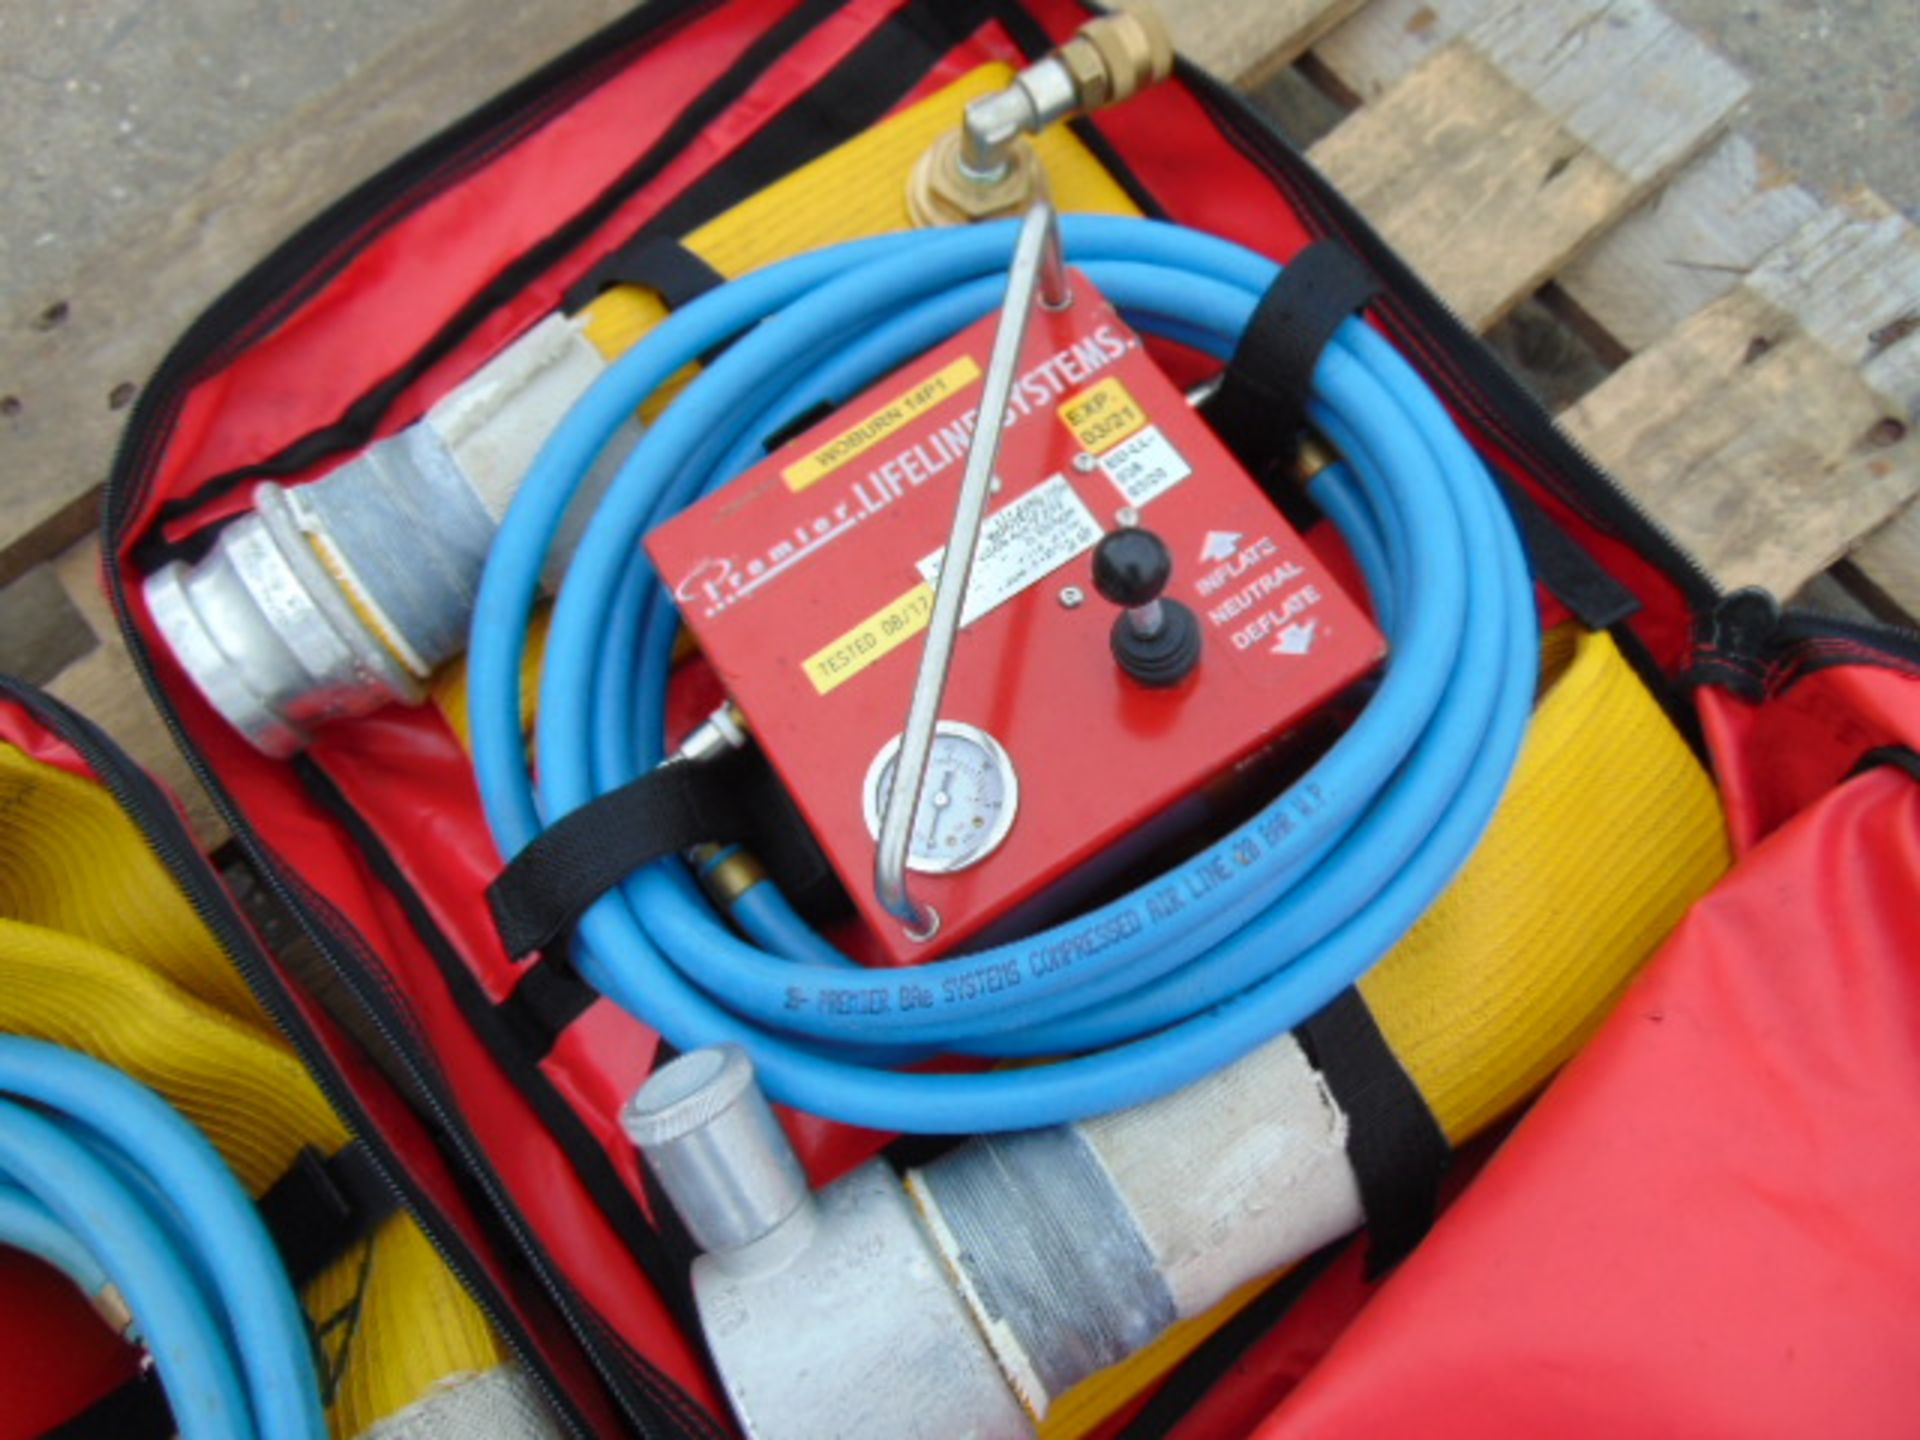 QTY 2 x Premier Lifeline Hose Inflation Systems - Image 2 of 4